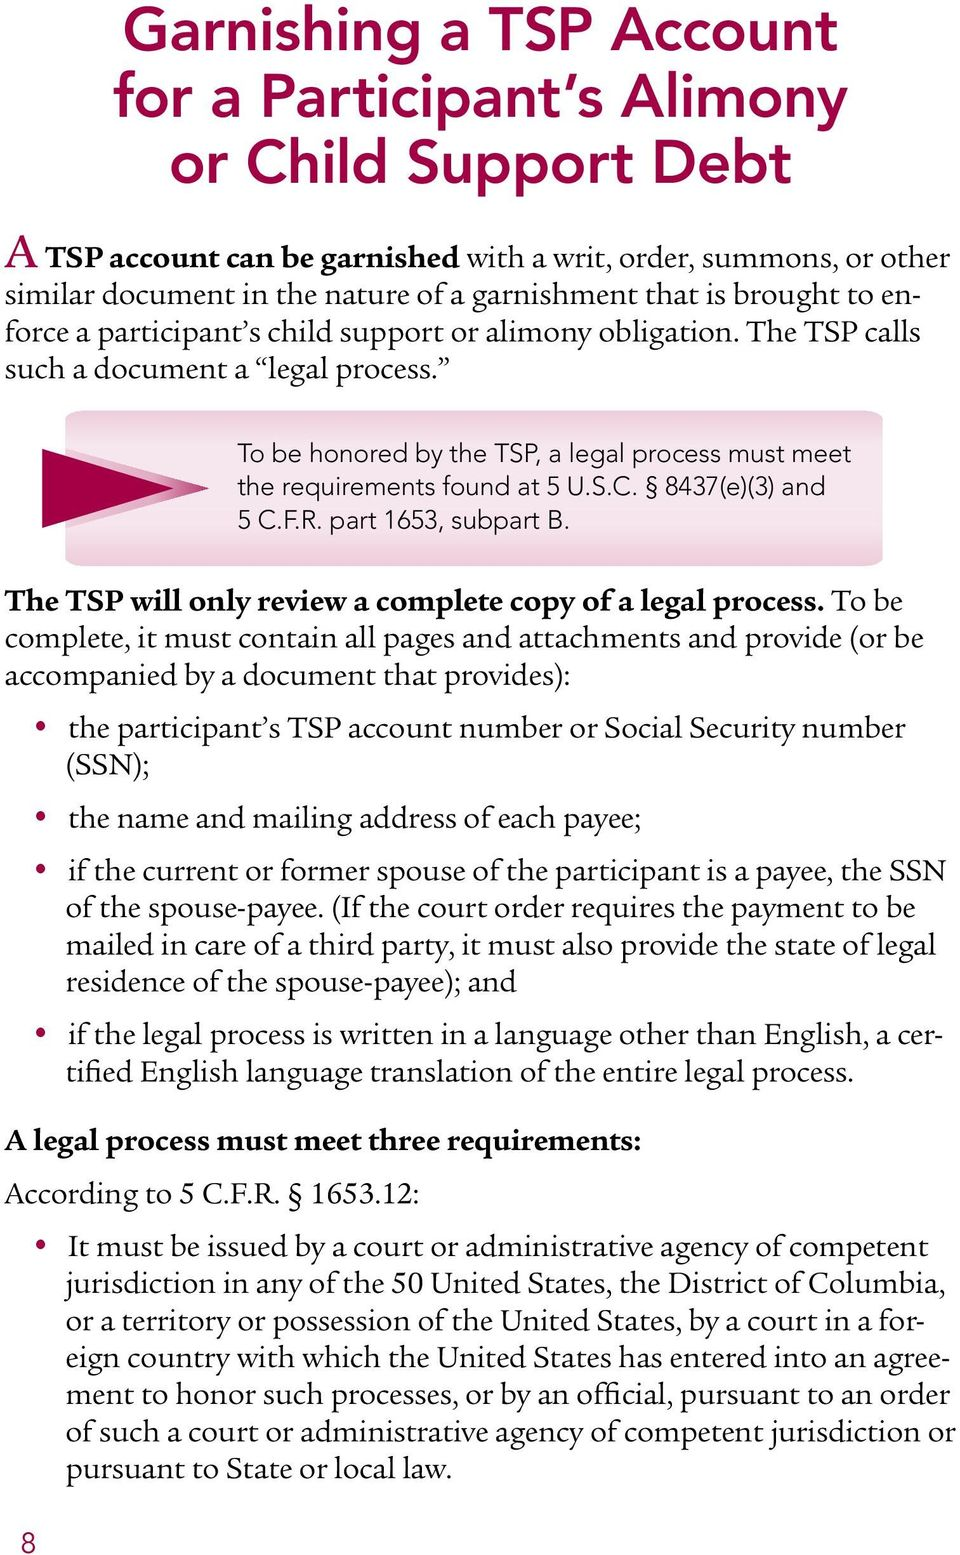 To be honored by the TSP, a legal process must meet the requirements found at 5 U.S.C. 8437(e)(3) and 5 C.F.R. part 1653, subpart B. The TSP will only review a complete copy of a legal process.